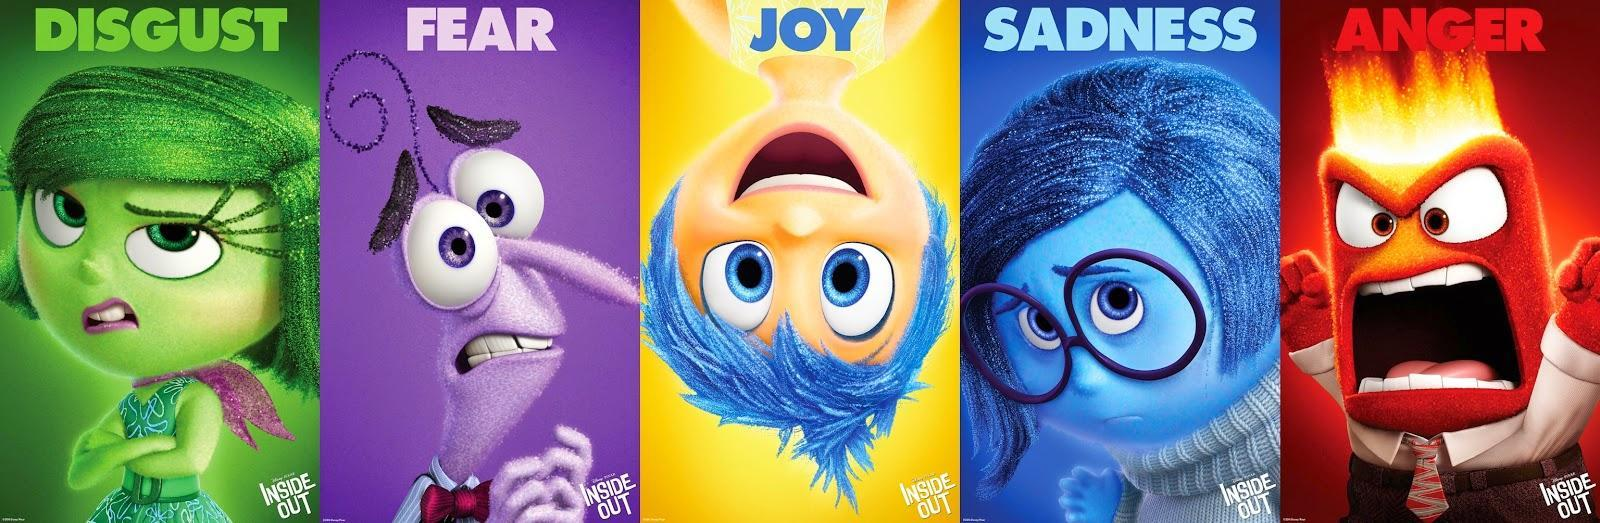 "I know this is random but I just wanna make it interesting, so which emotion from ""Inside Out"" is better?"